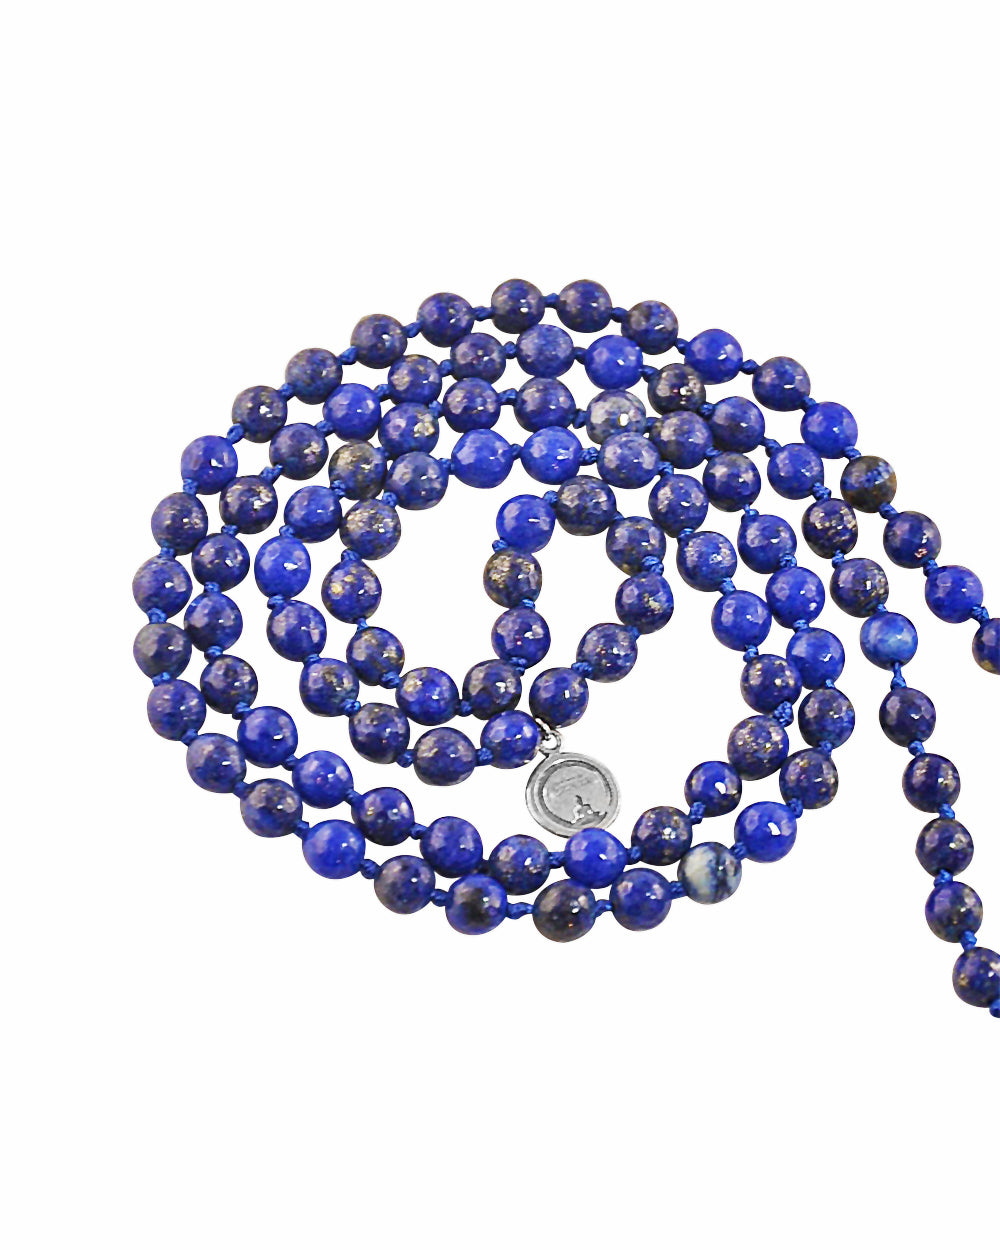 Water Element Lapis Lazuli 108 Beads Mala with Silver Lotus Guru Bead